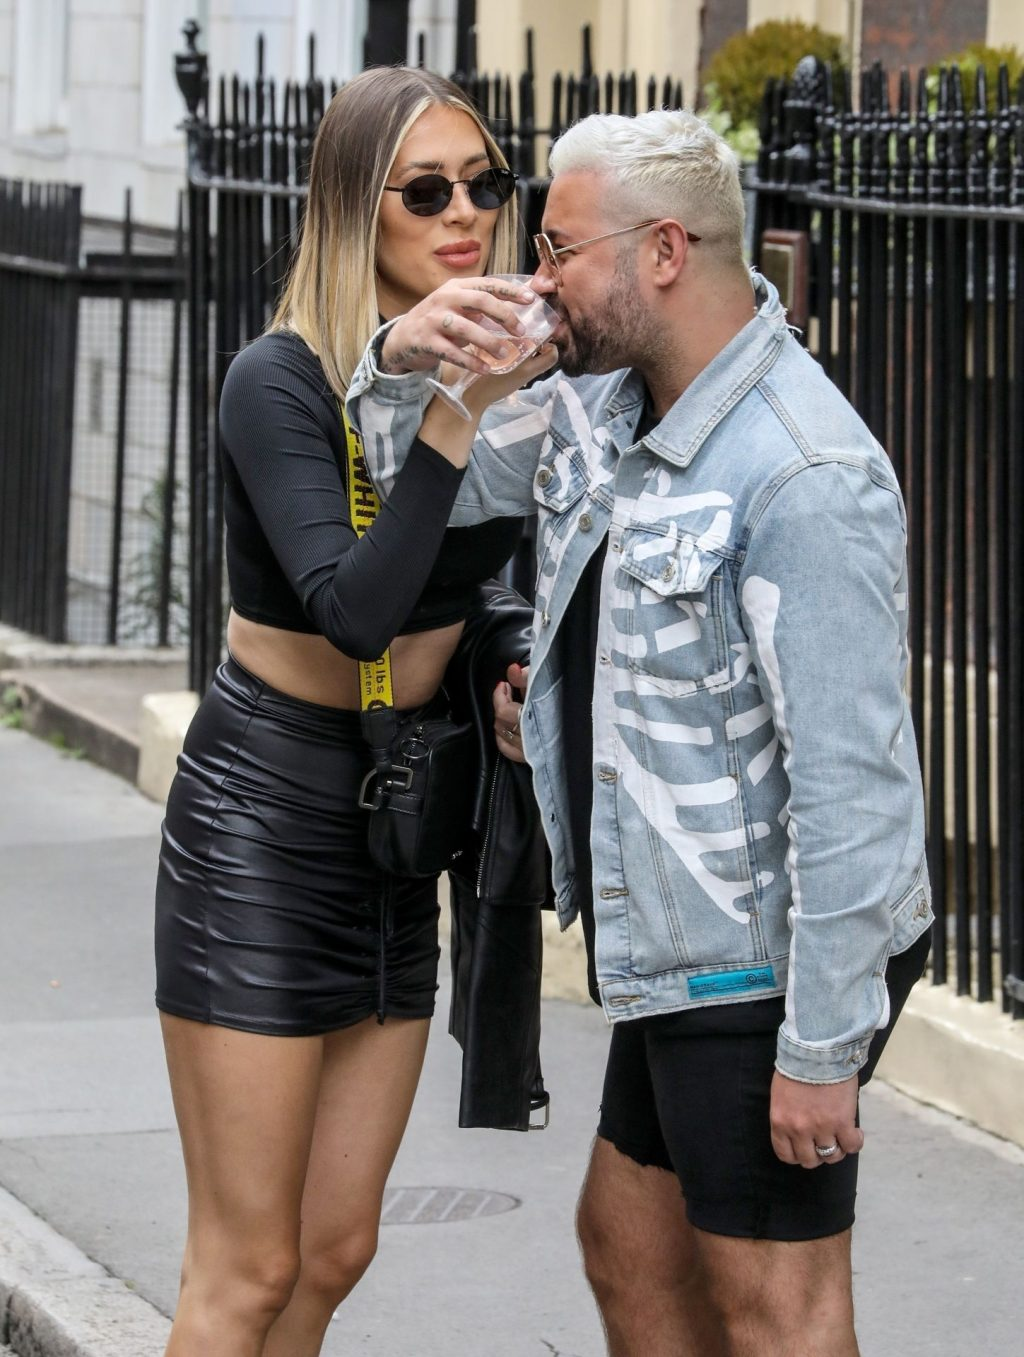 Demi Sims Cuts a Stylish Figure in a Crop Top and Leather Mini Skirt in London (79 Photos)